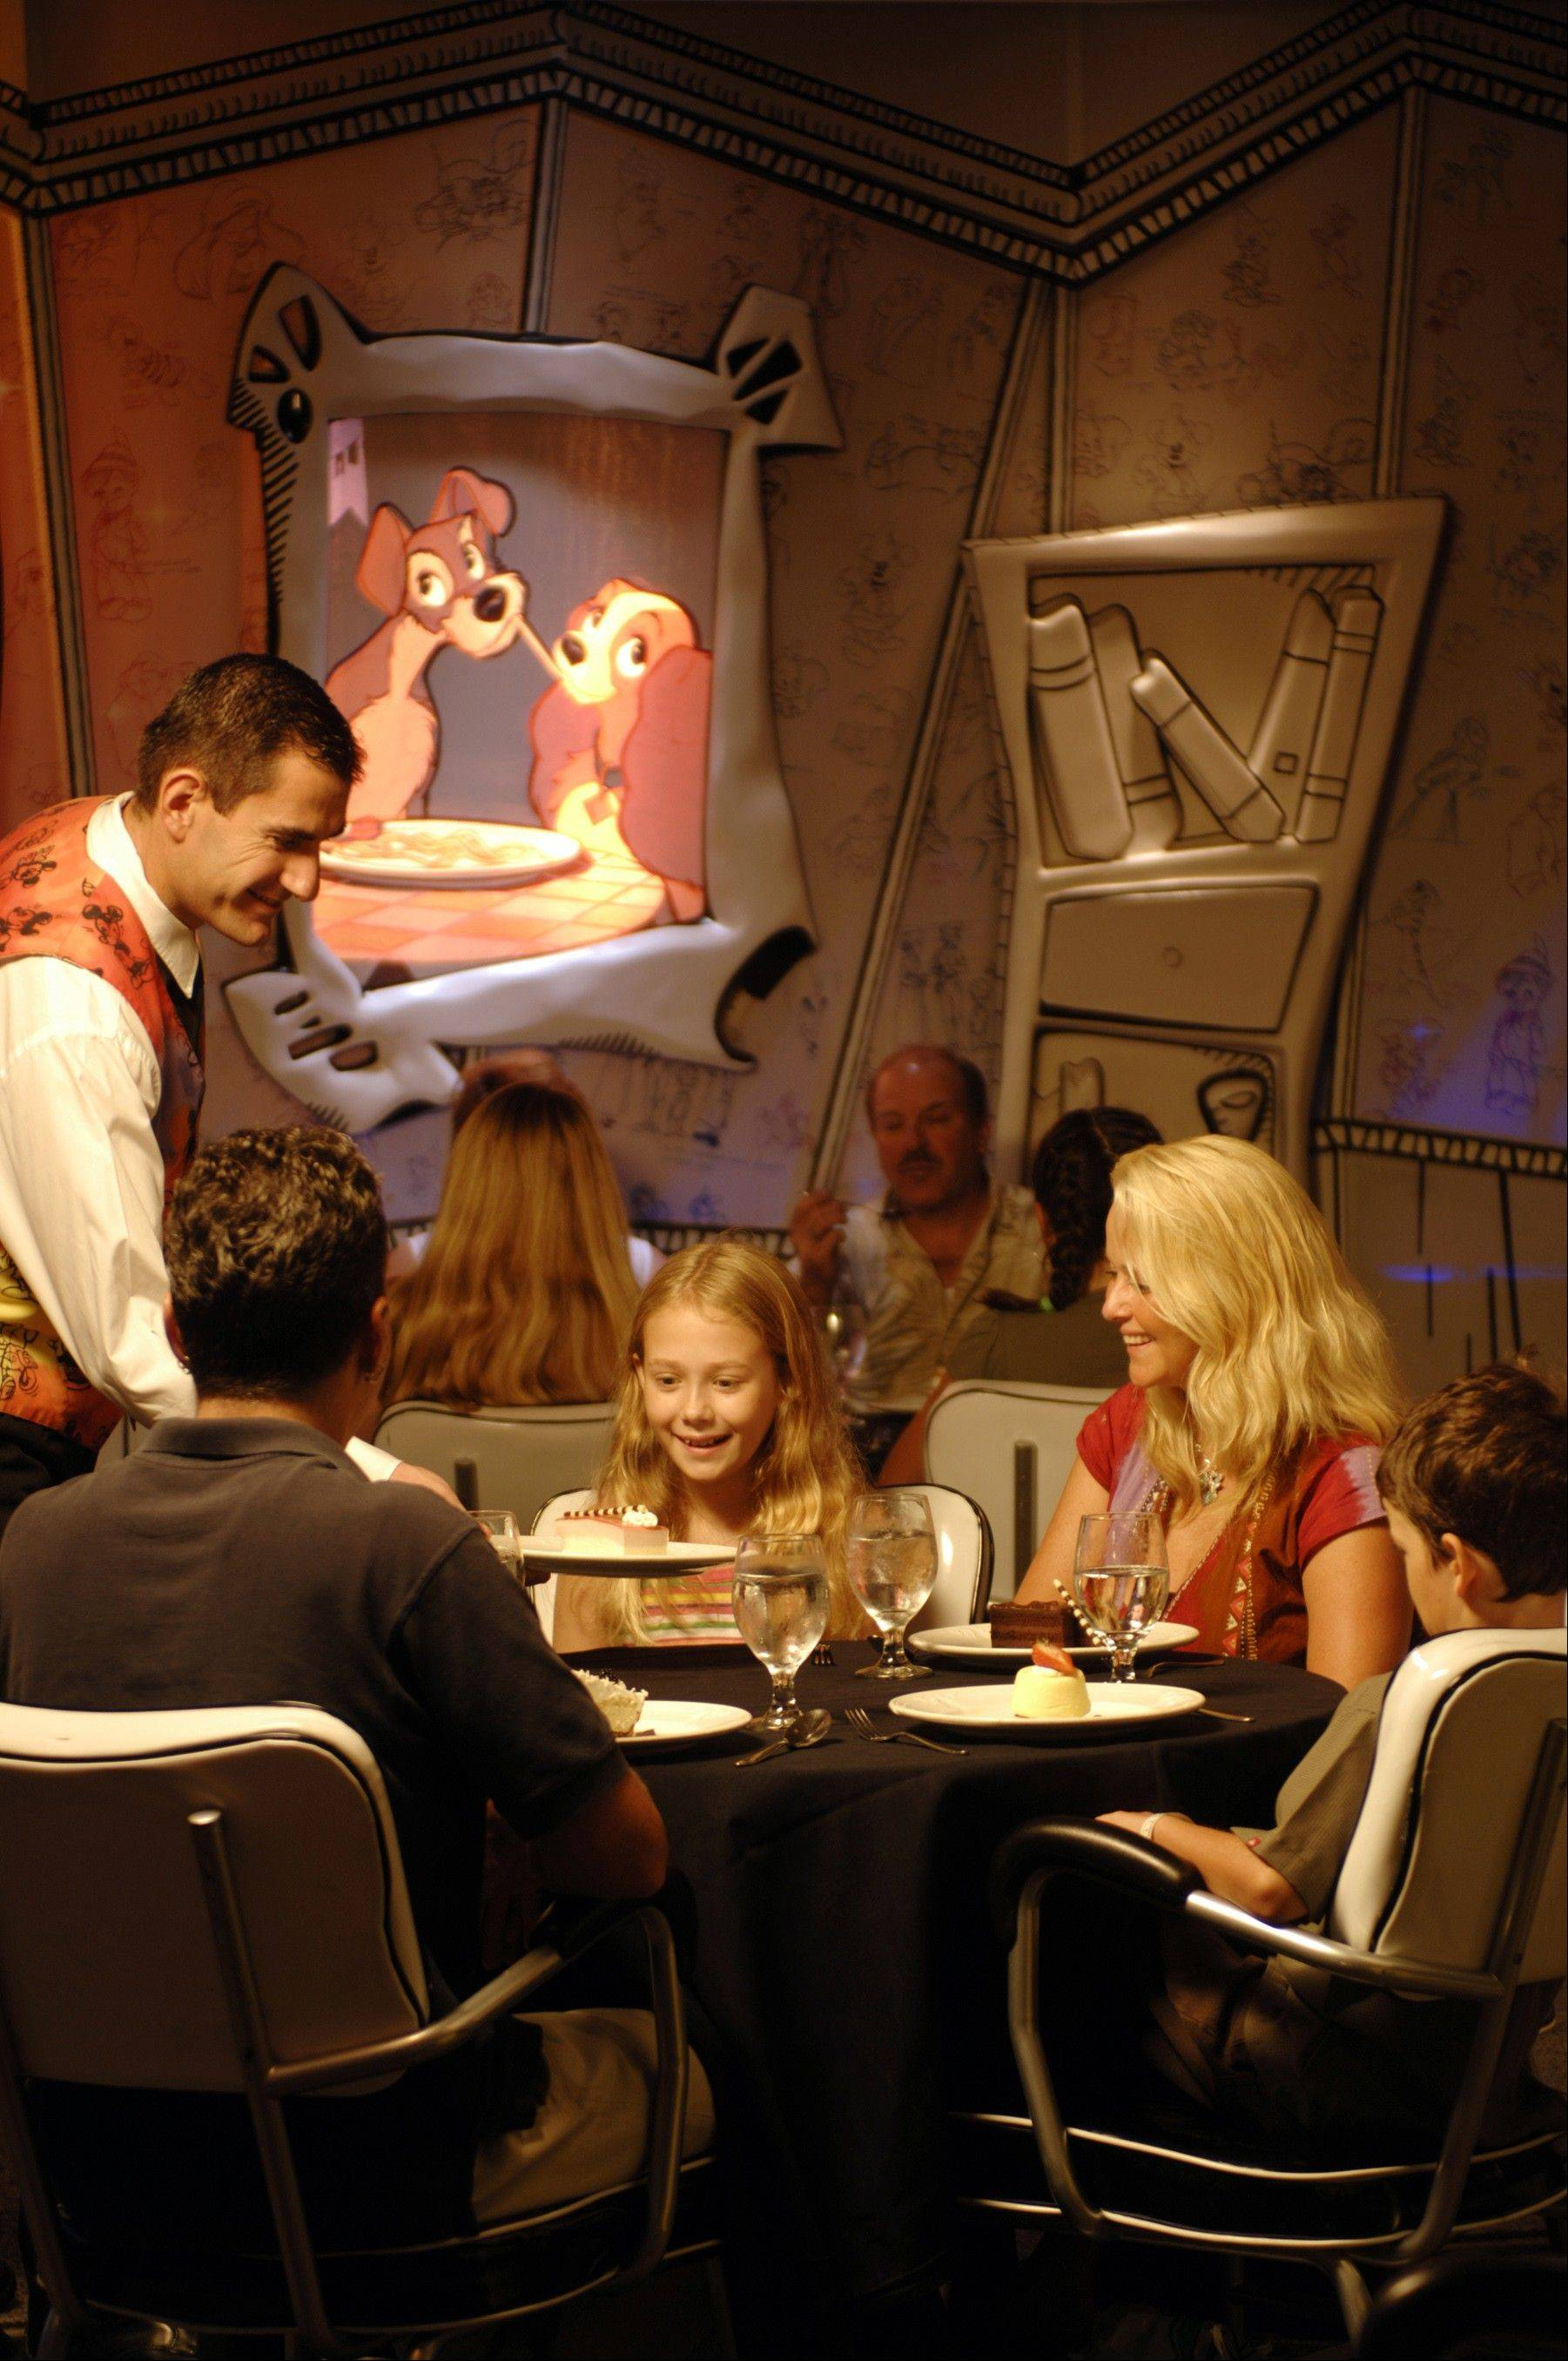 Animator's Palate is one of three dining concept restaurants aboard Disney Cruise Line. On the Disney Wonder, the entire restaurant transforms from a black-and-white artist sketch to a full-color masterpiece during the course of dinner.